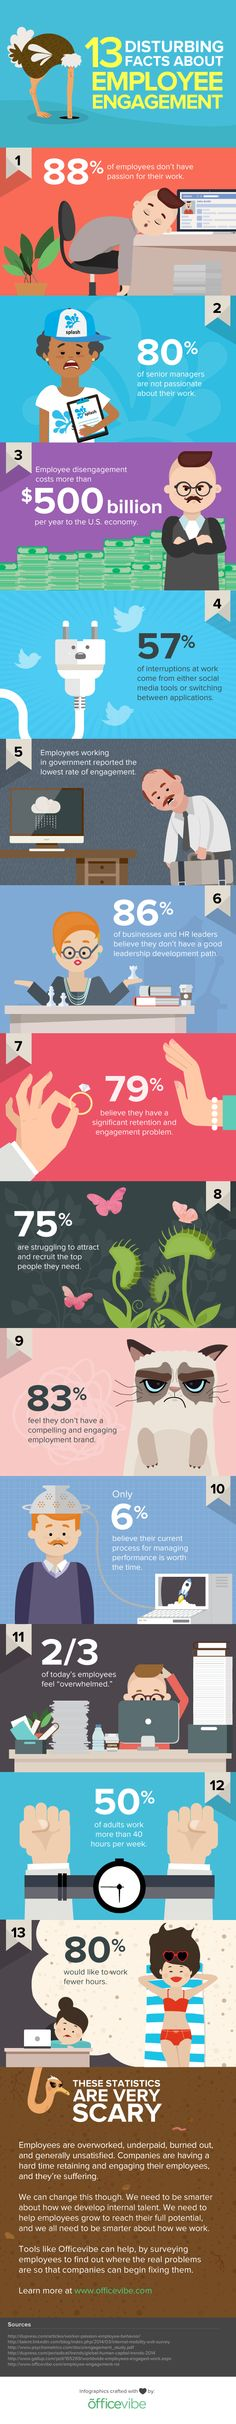 13 Disturbing Facts About Employee Engagement [Infographic] #job #career